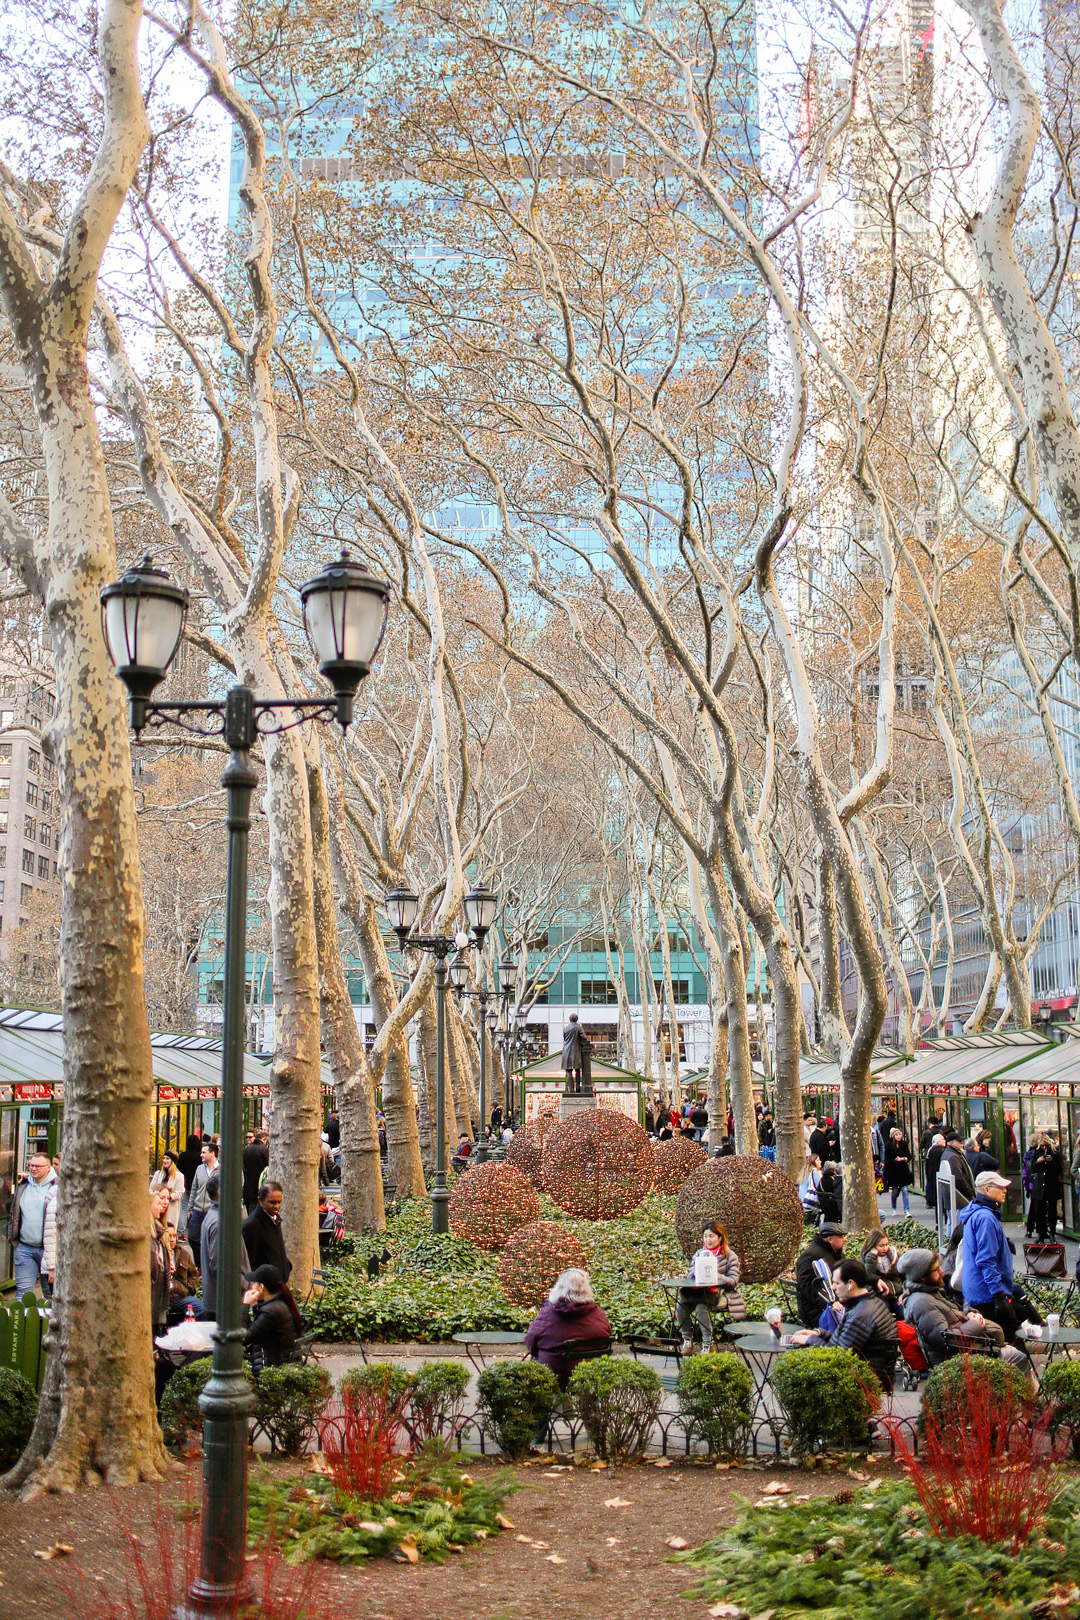 Bryant Park America Winter Village / Bryant Park Christmas Market + 4 Main NYC Christmas Markets to Visit This Winter // Local Adventurer #nyc #christmas #holidays